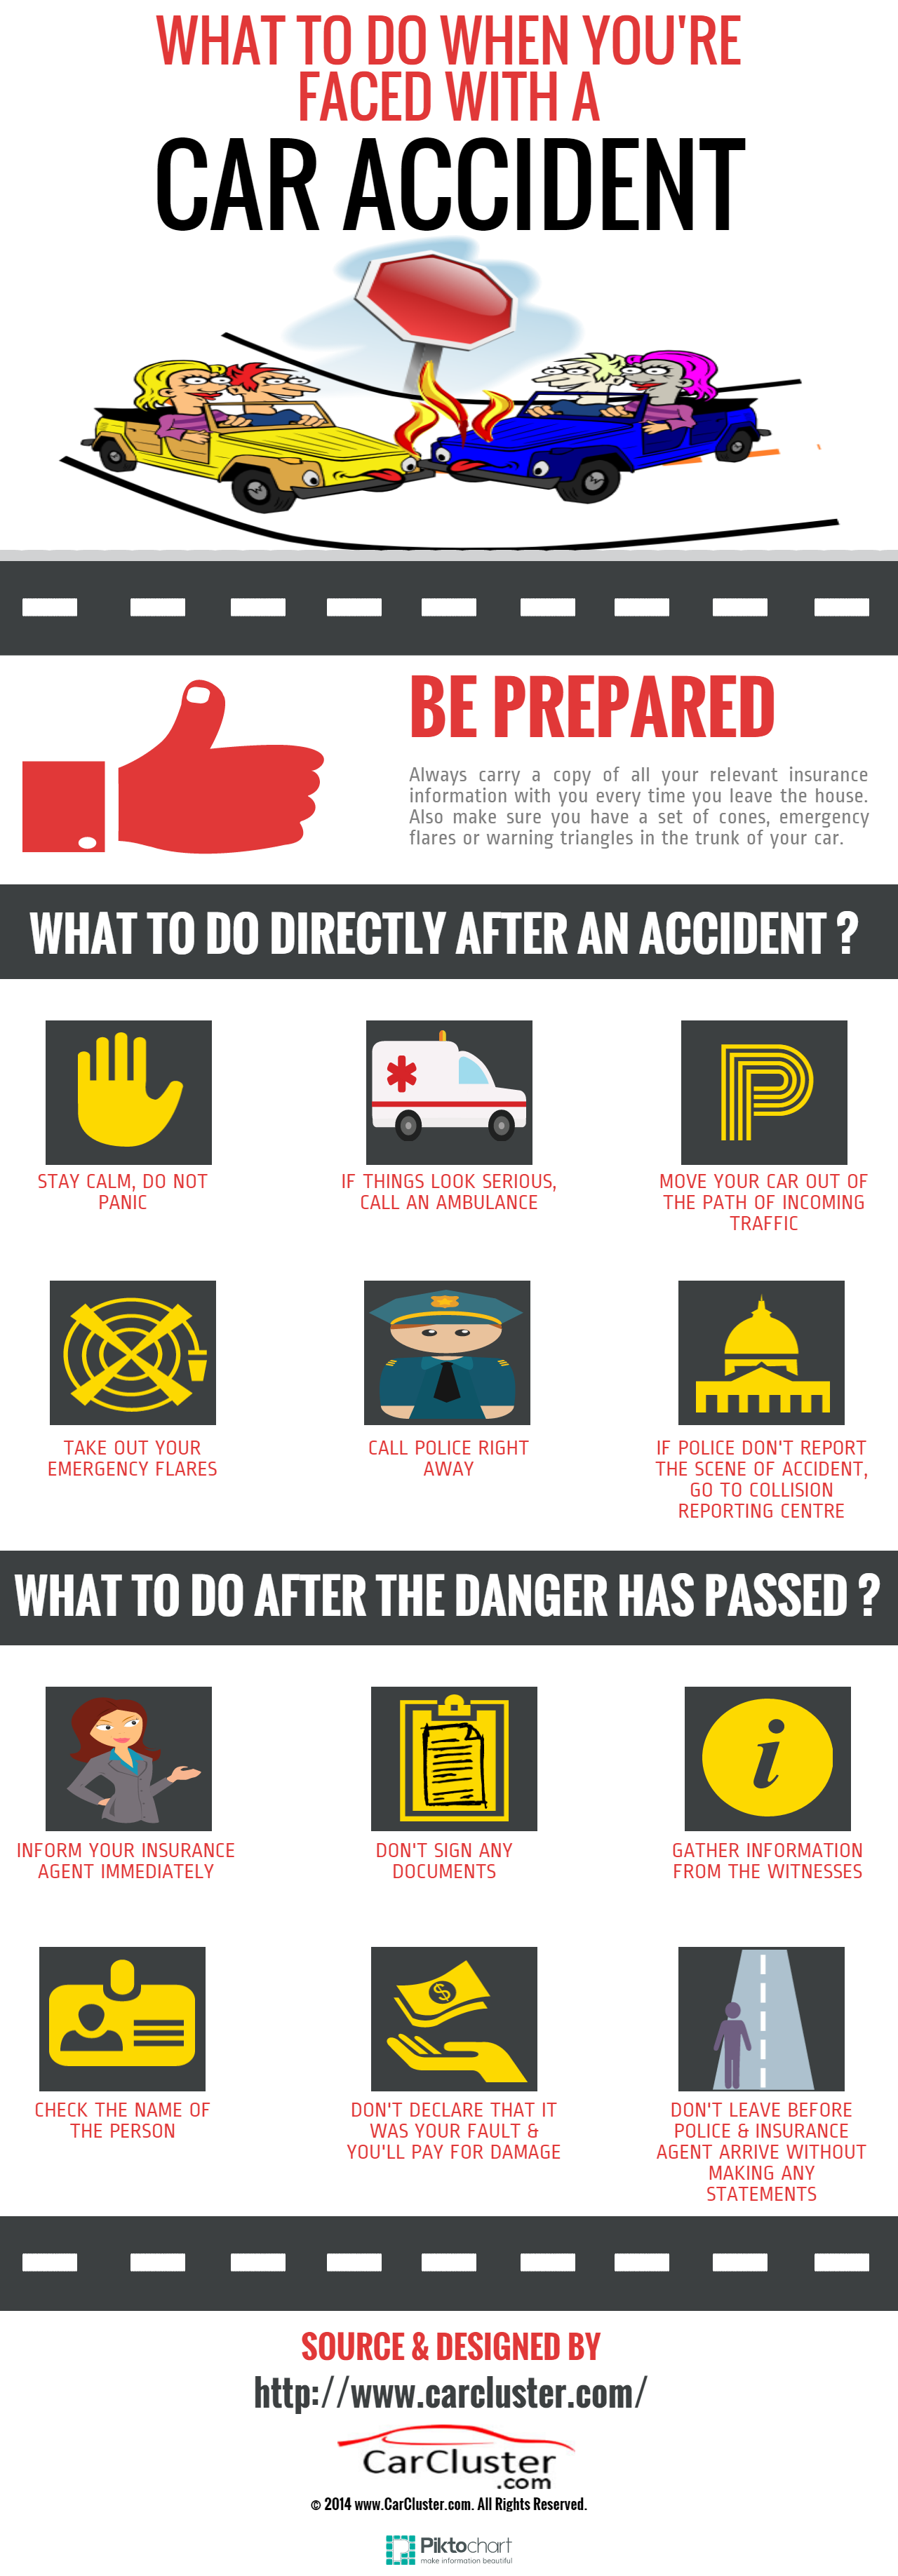 An Infographic that shows things to do when you faced a car accident